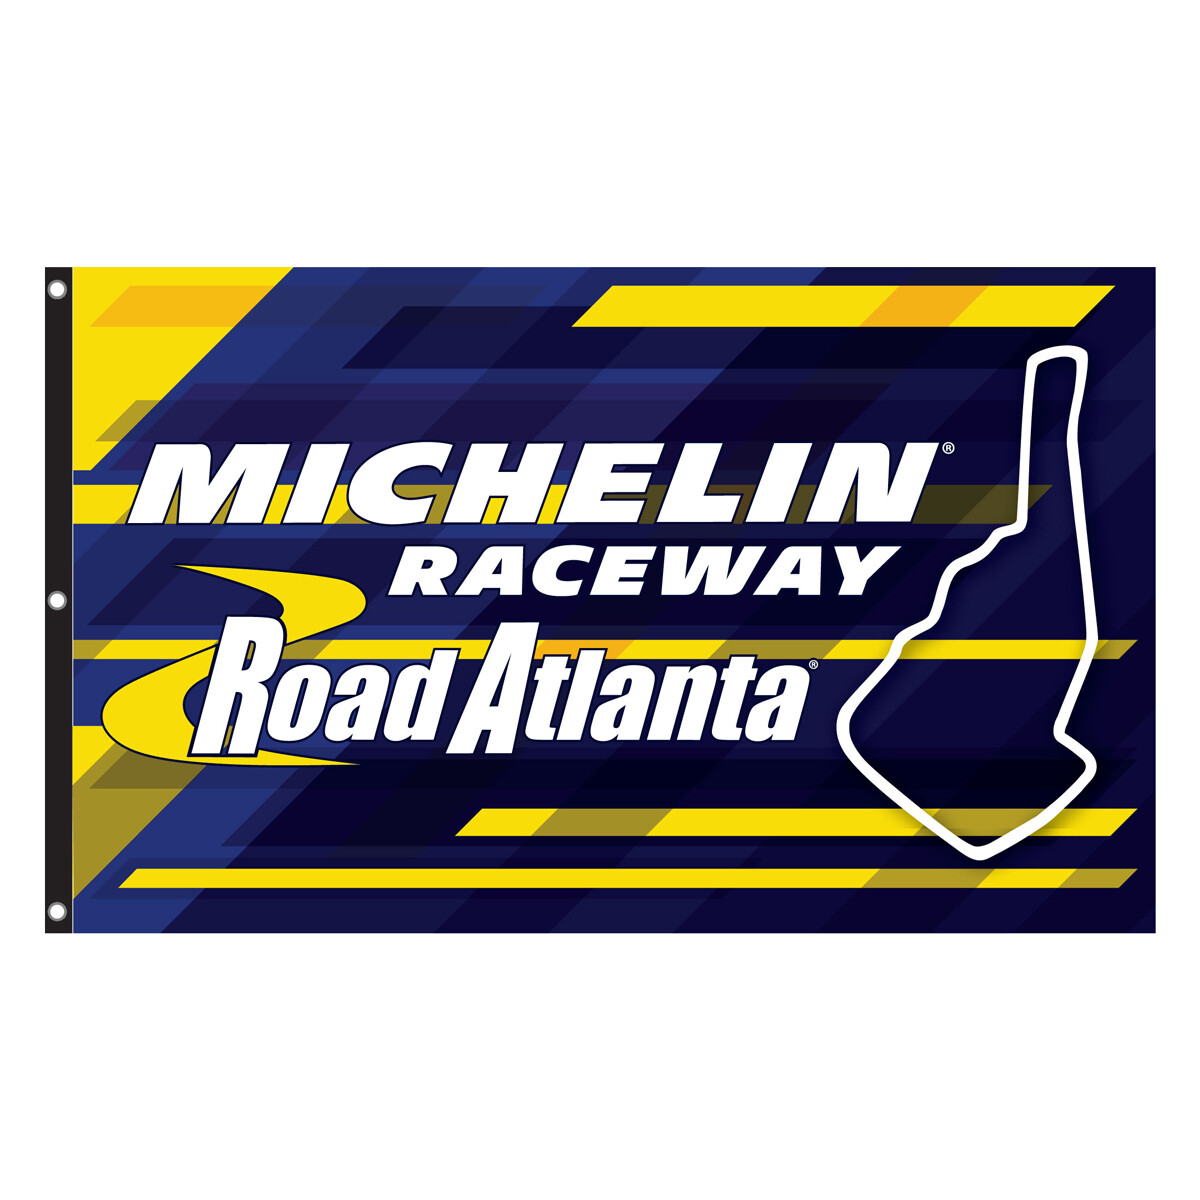 Michelin Raceway Road Atlanta Flag - Blue/Gold 3 x 5 Grommet